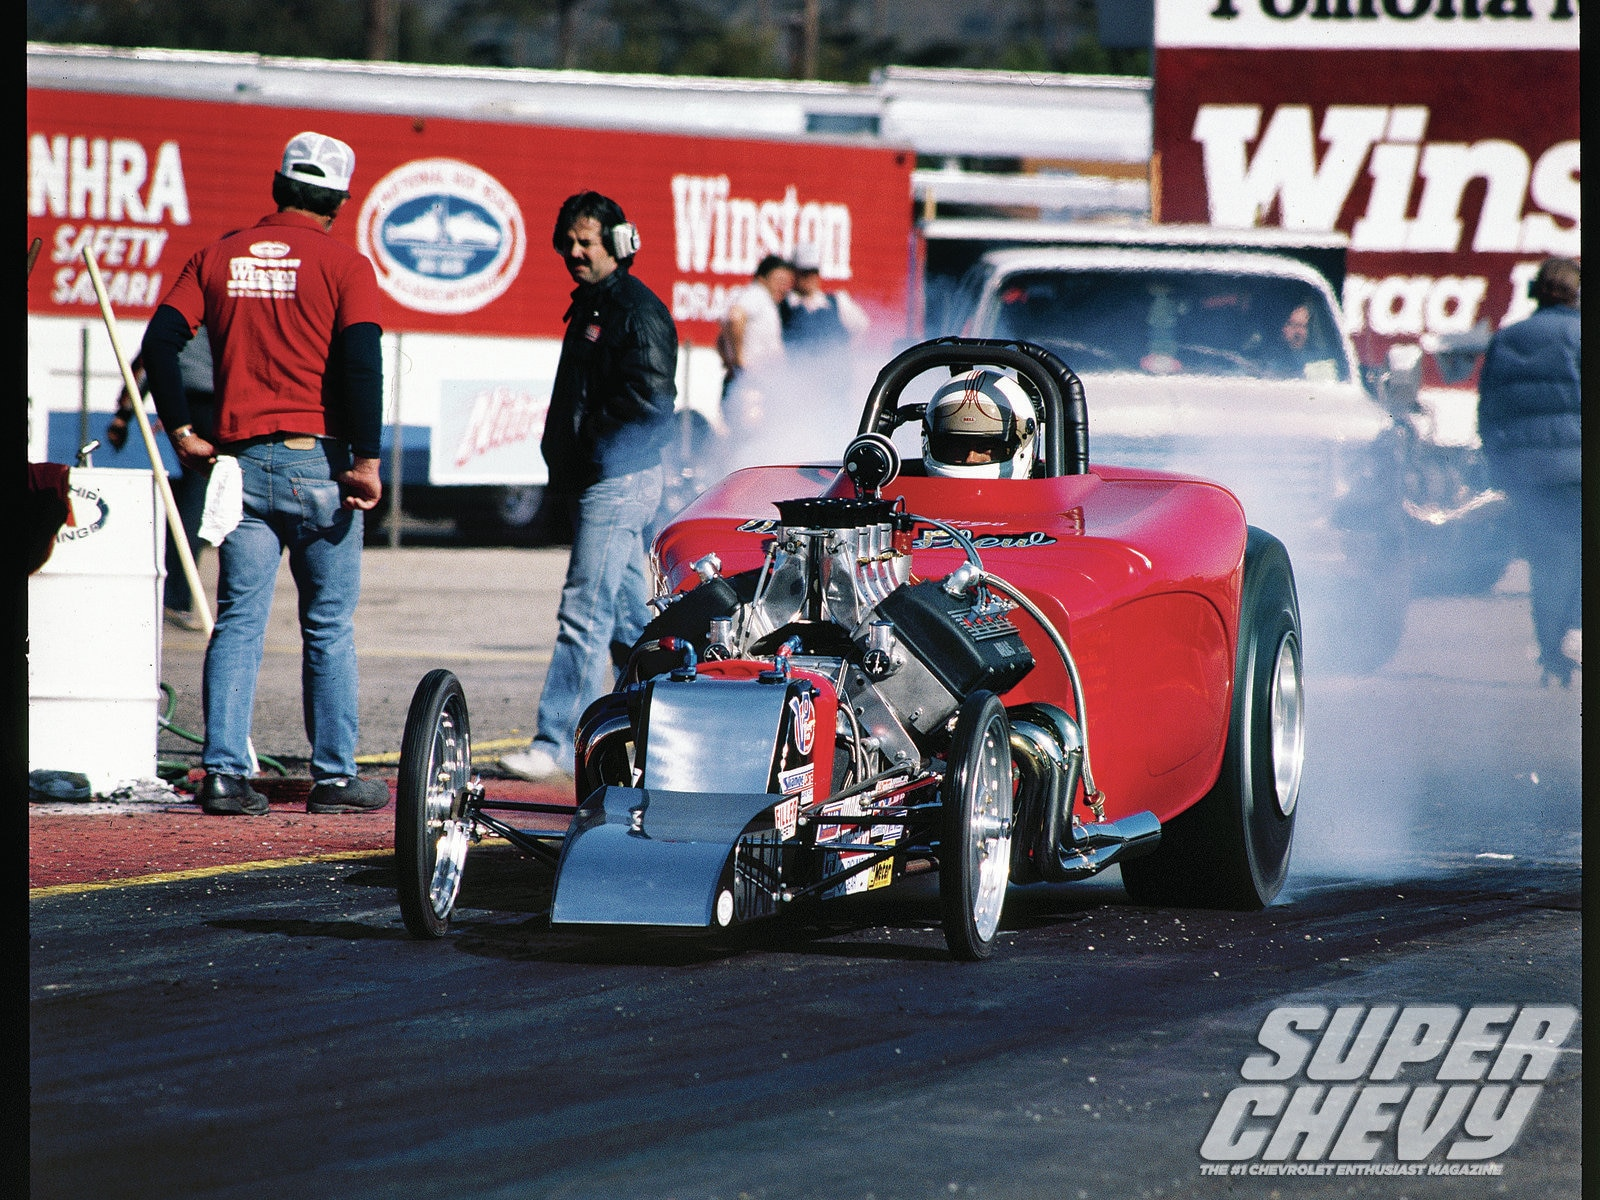 Sucp_1207_023_super_chevy_drag_racing_greats_part_3_